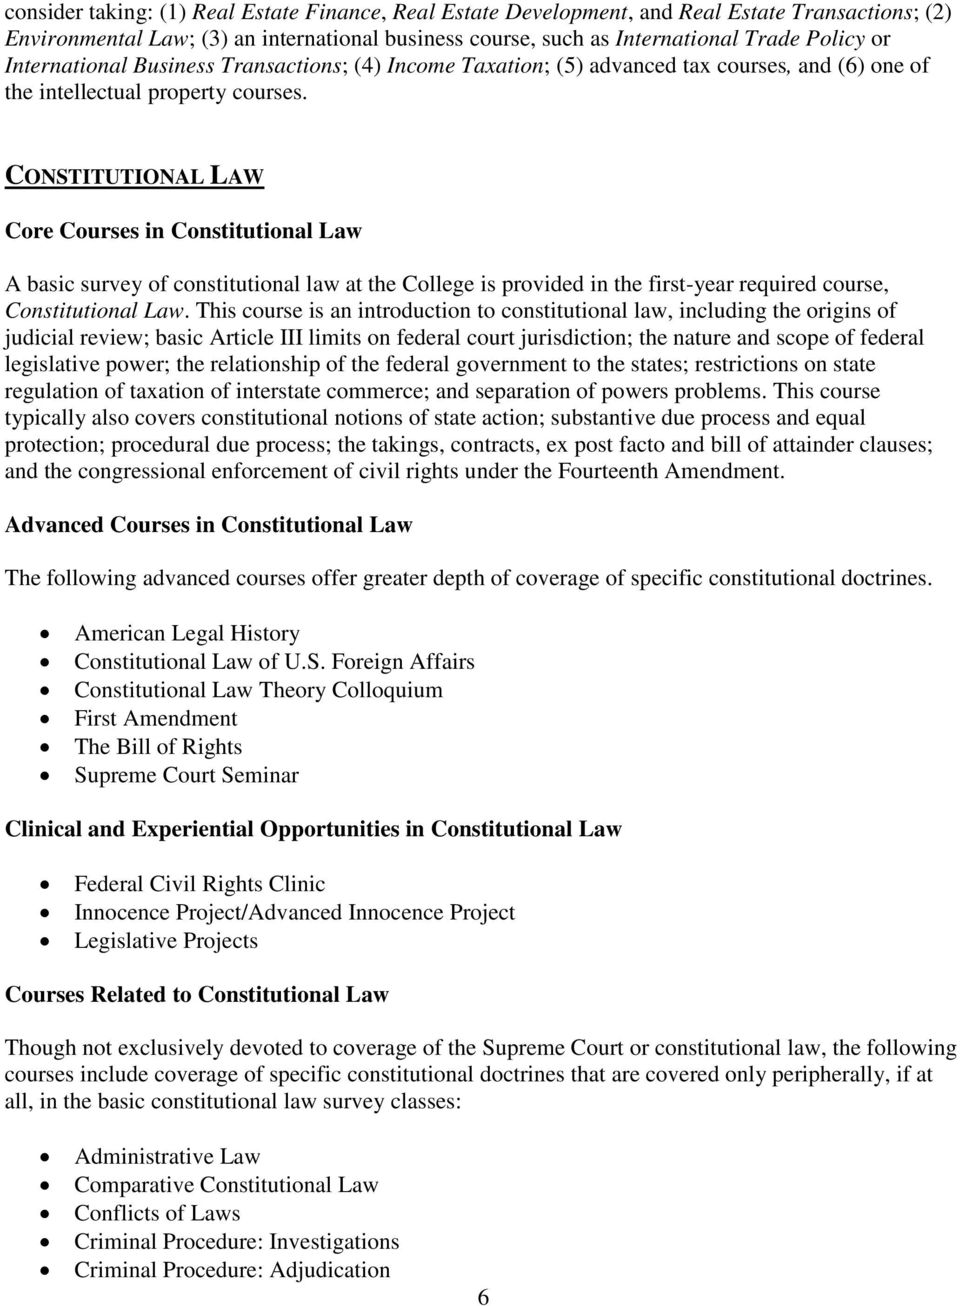 CONSTITUTIONAL LAW Core Courses in Constitutional Law A basic survey of constitutional law at the College is provided in the first-year required course, Constitutional Law.